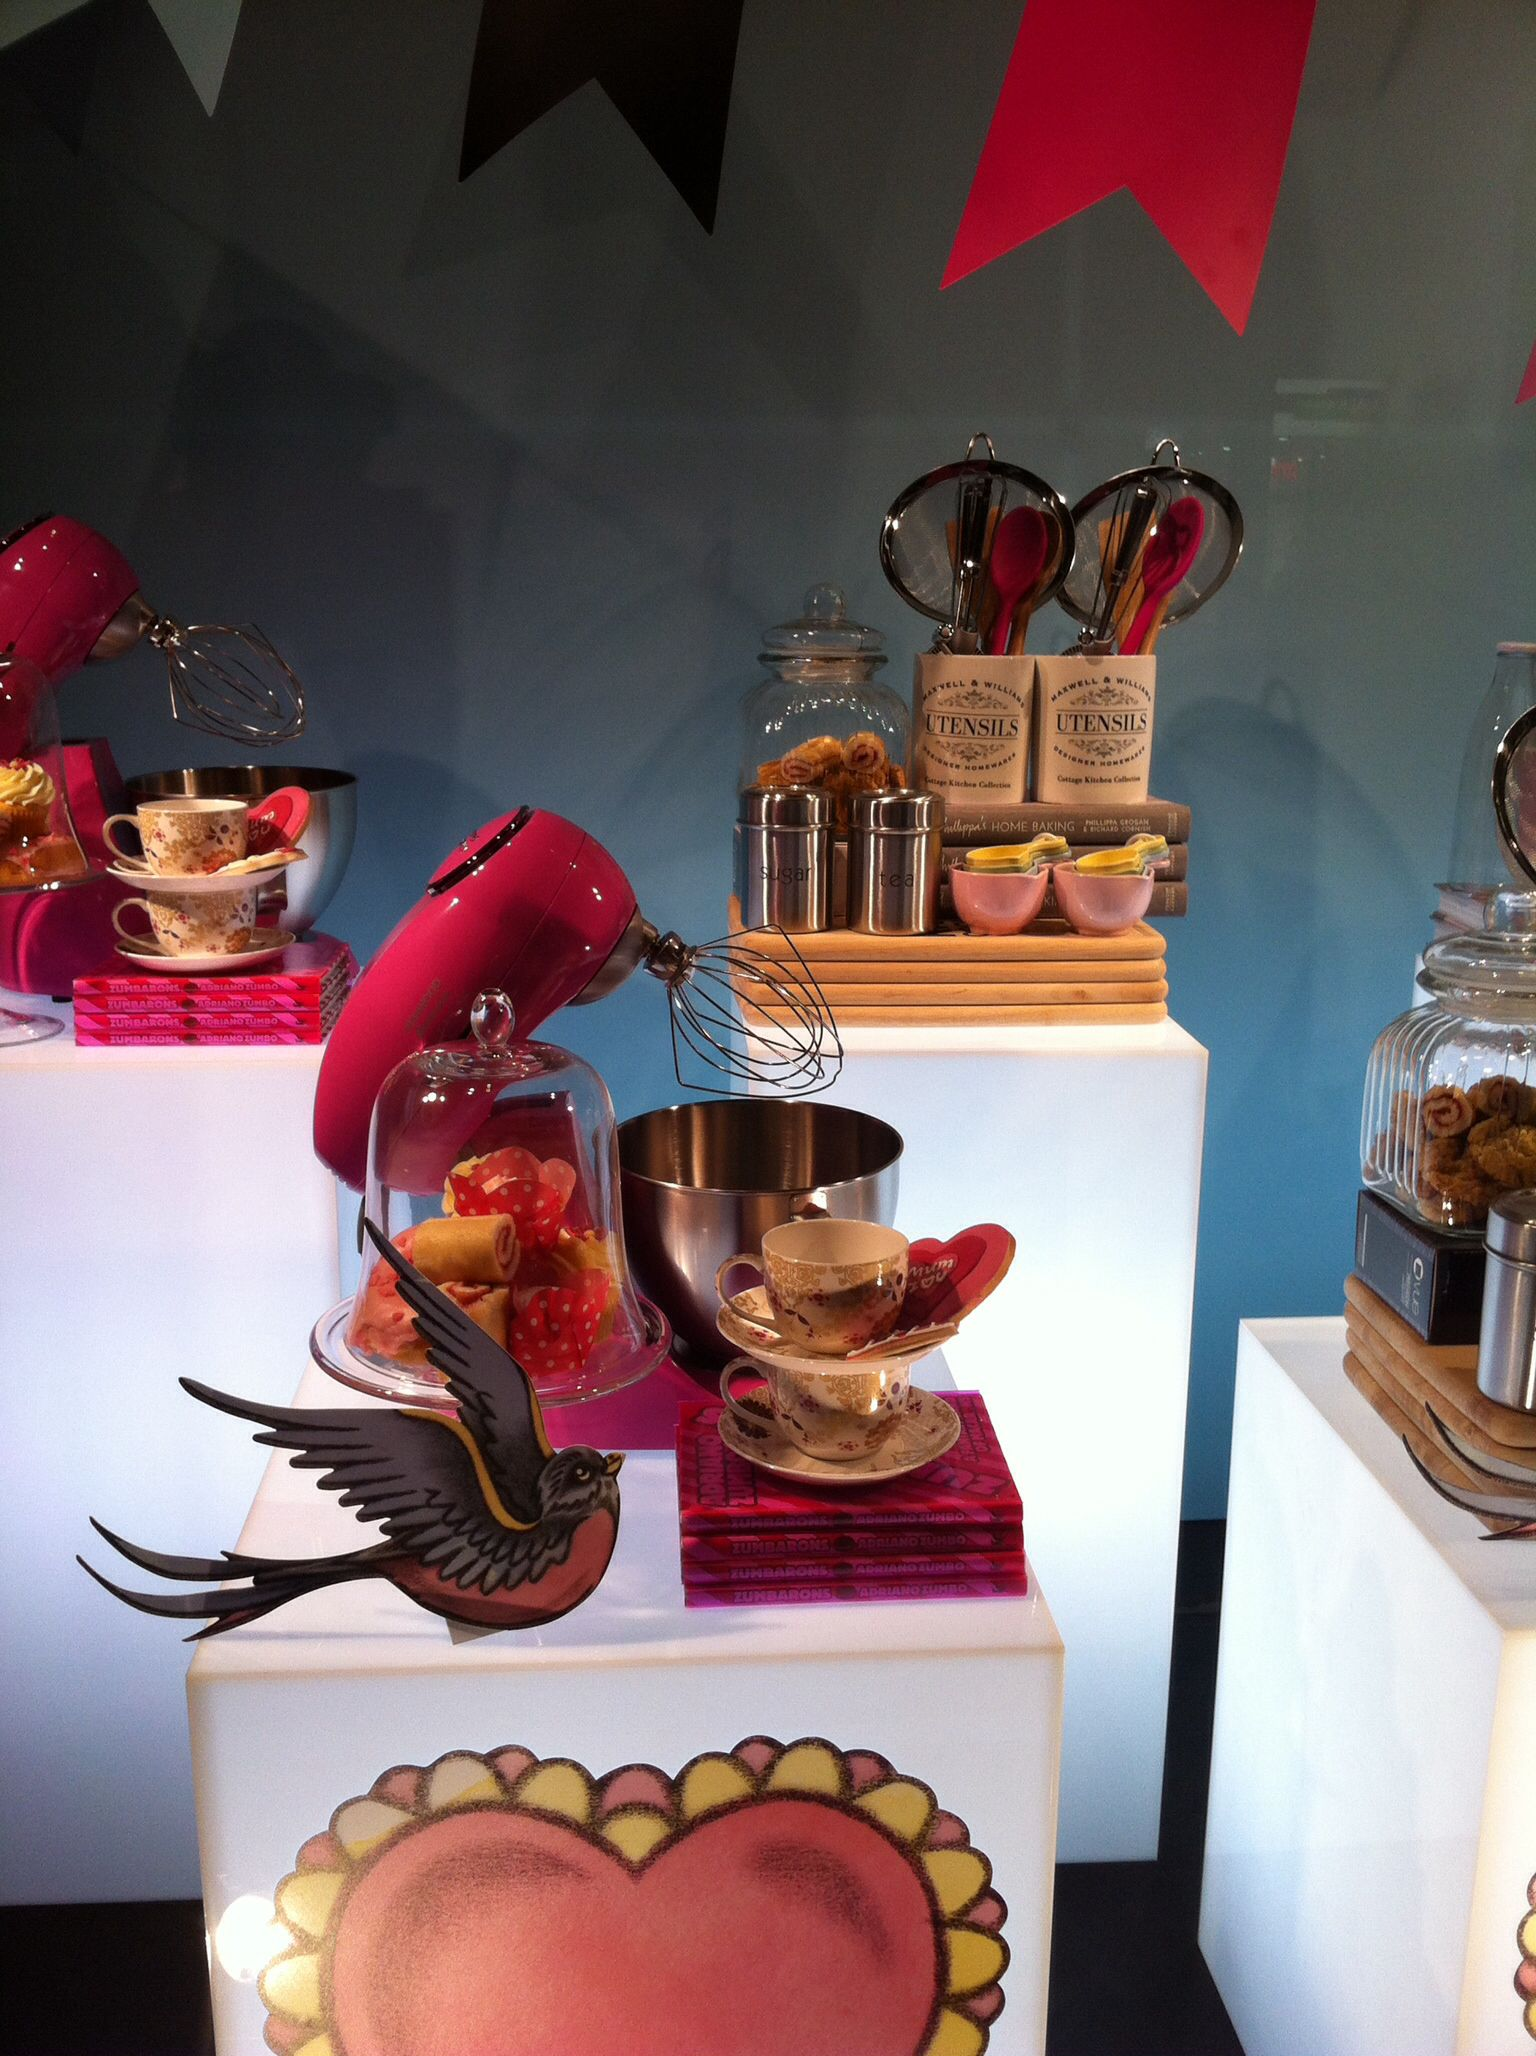 Myer Mothers' Day window display, Bourke Street Mall, Melbourne.  Image by Patricia Denis #kitchenware